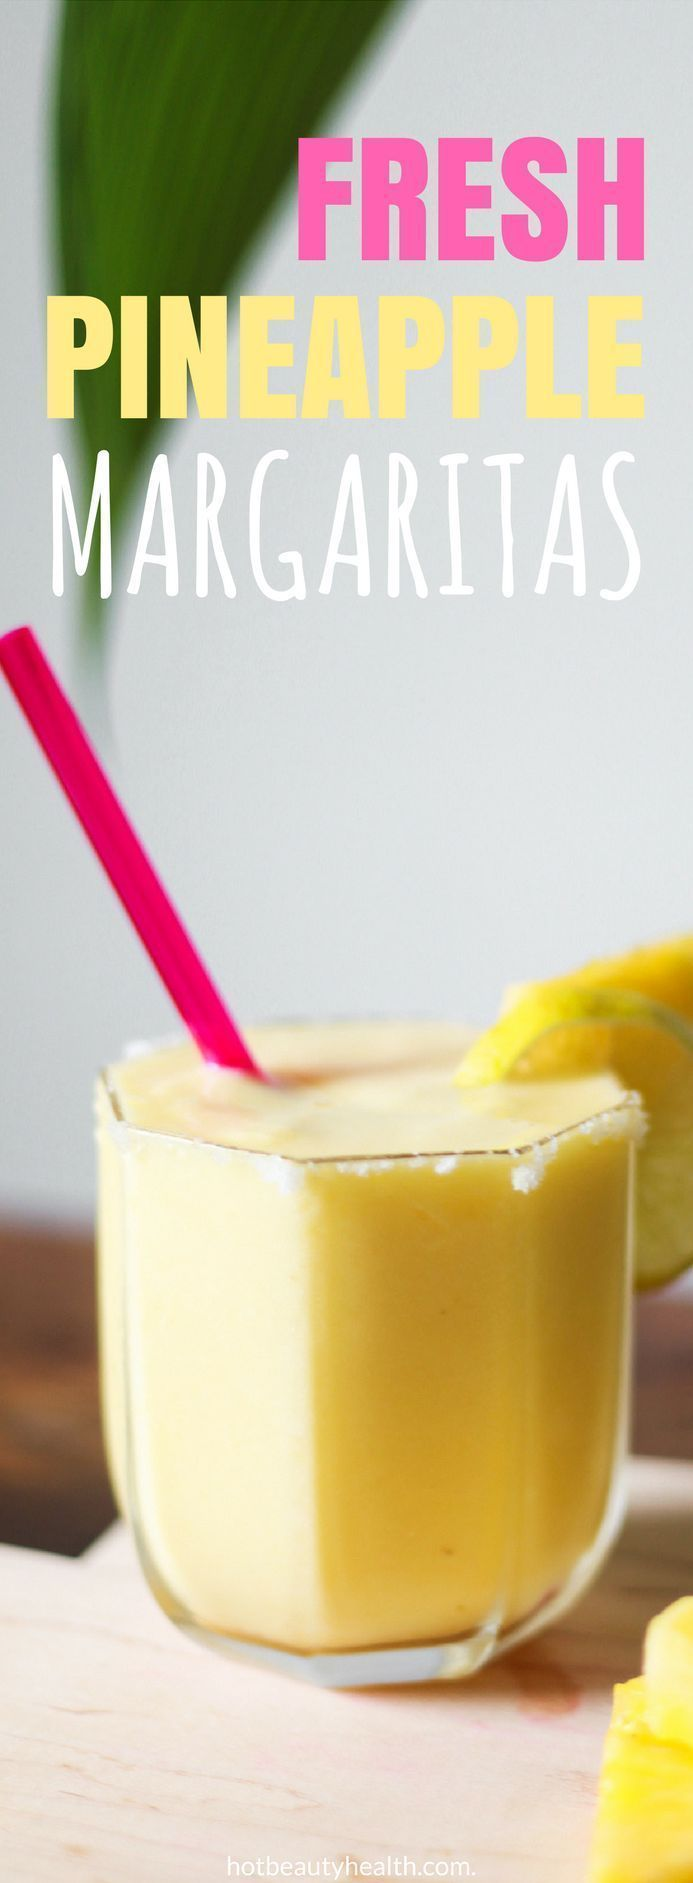 A Fresh Pineapple Margarita Recipe #tequiladrinks